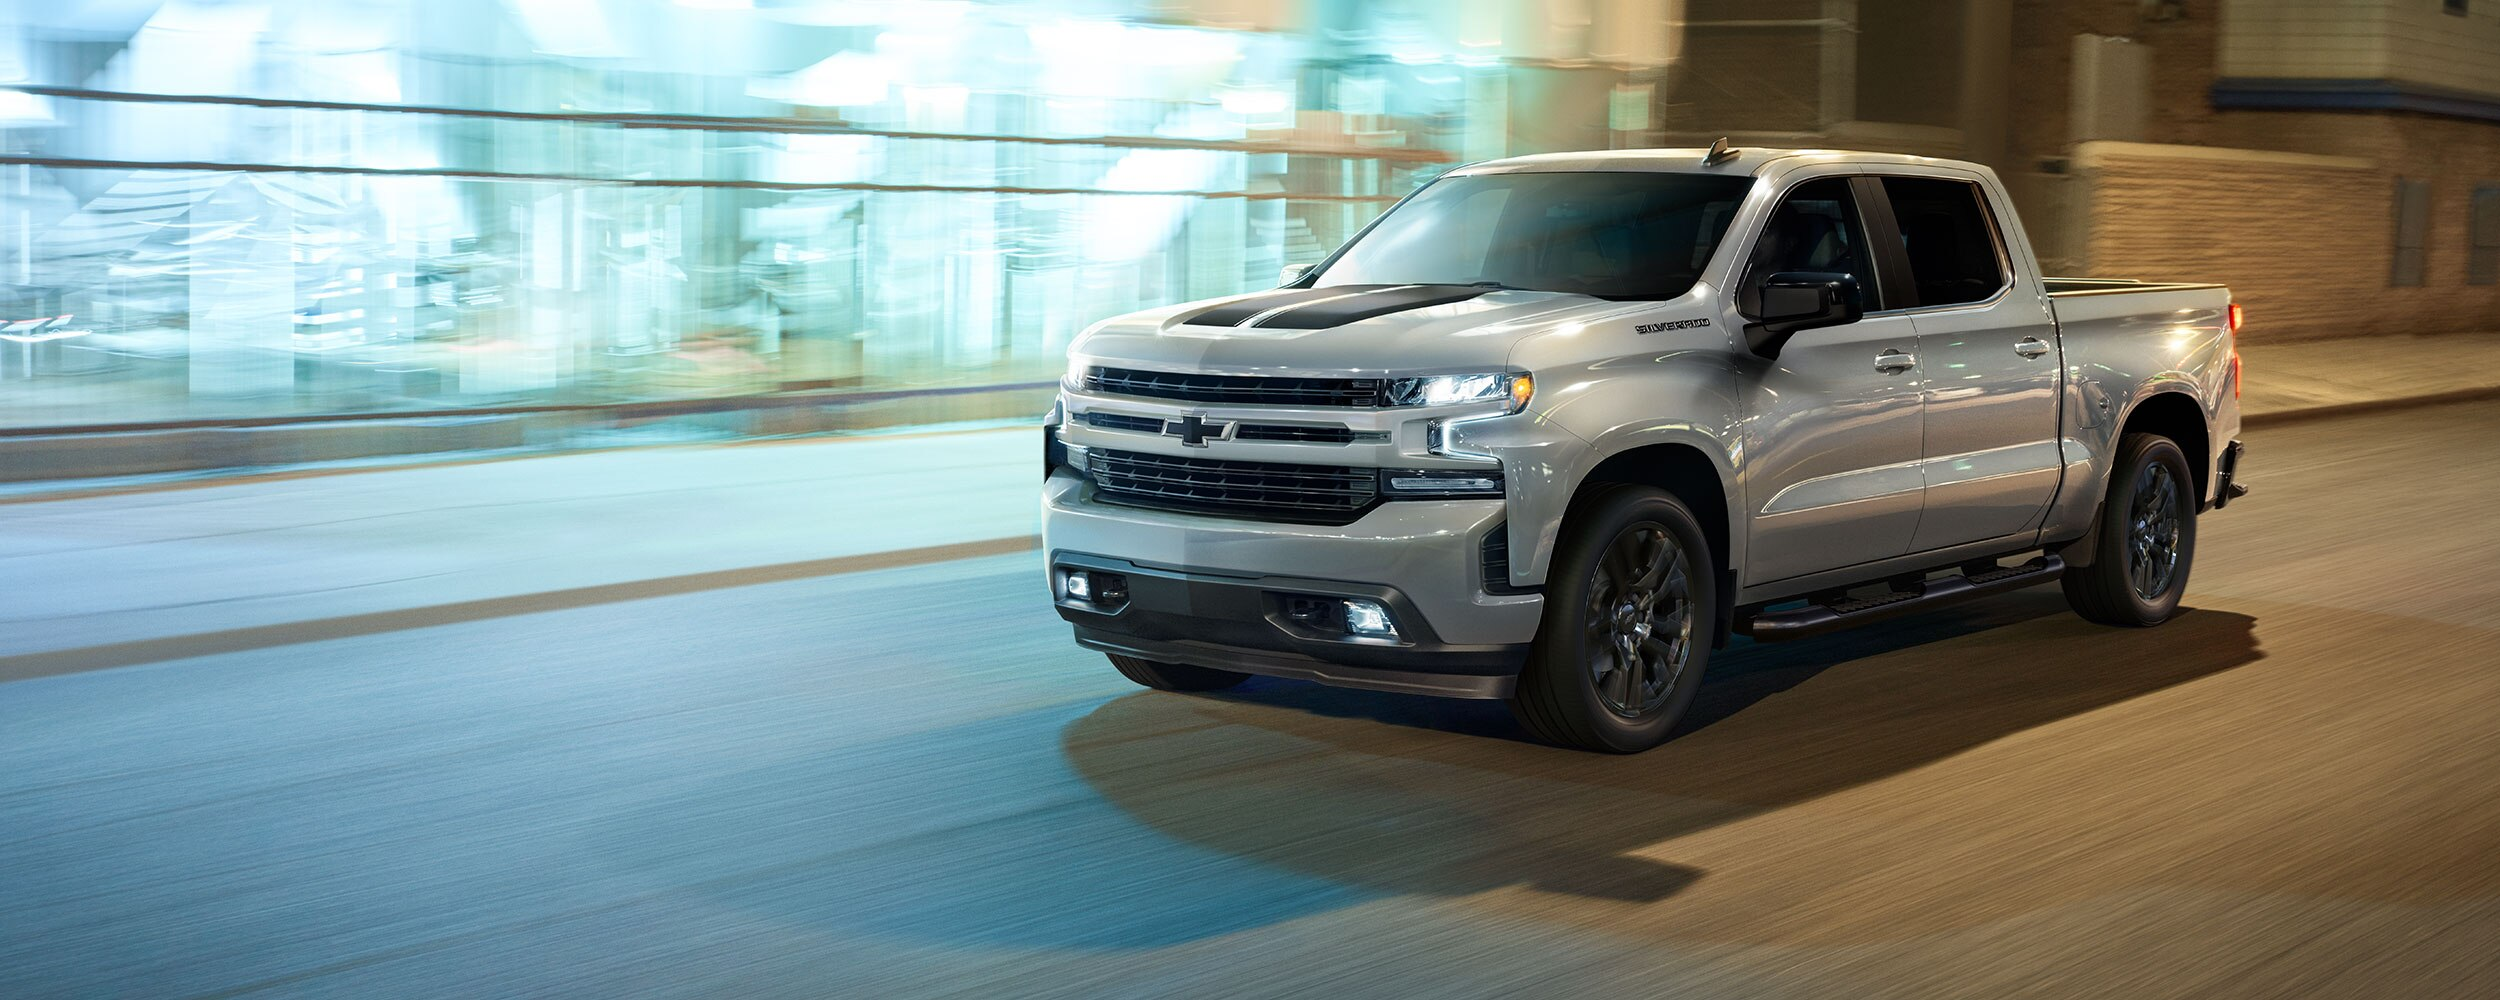 2020 Chevy Silverado 1500 Review Pricing And Specs Wallace Chevrolet Blog